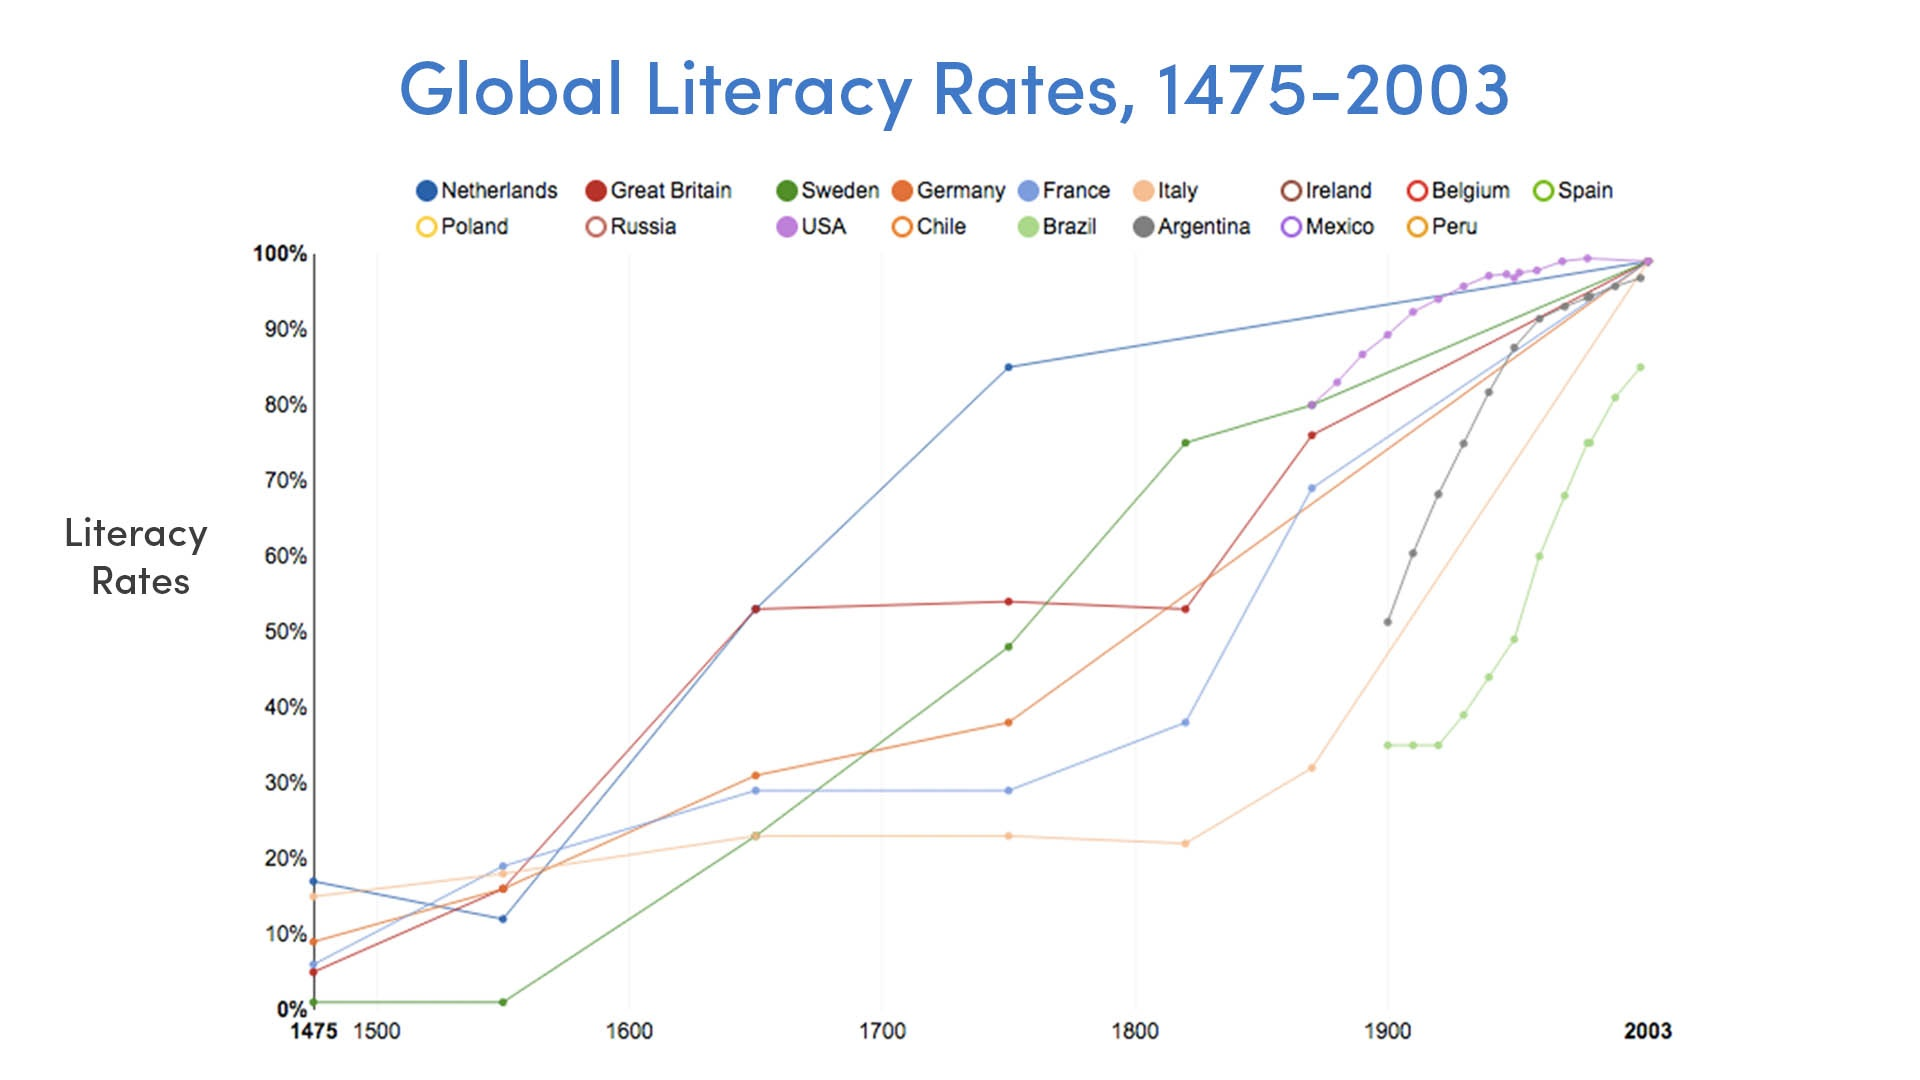 Global Literacy Rates